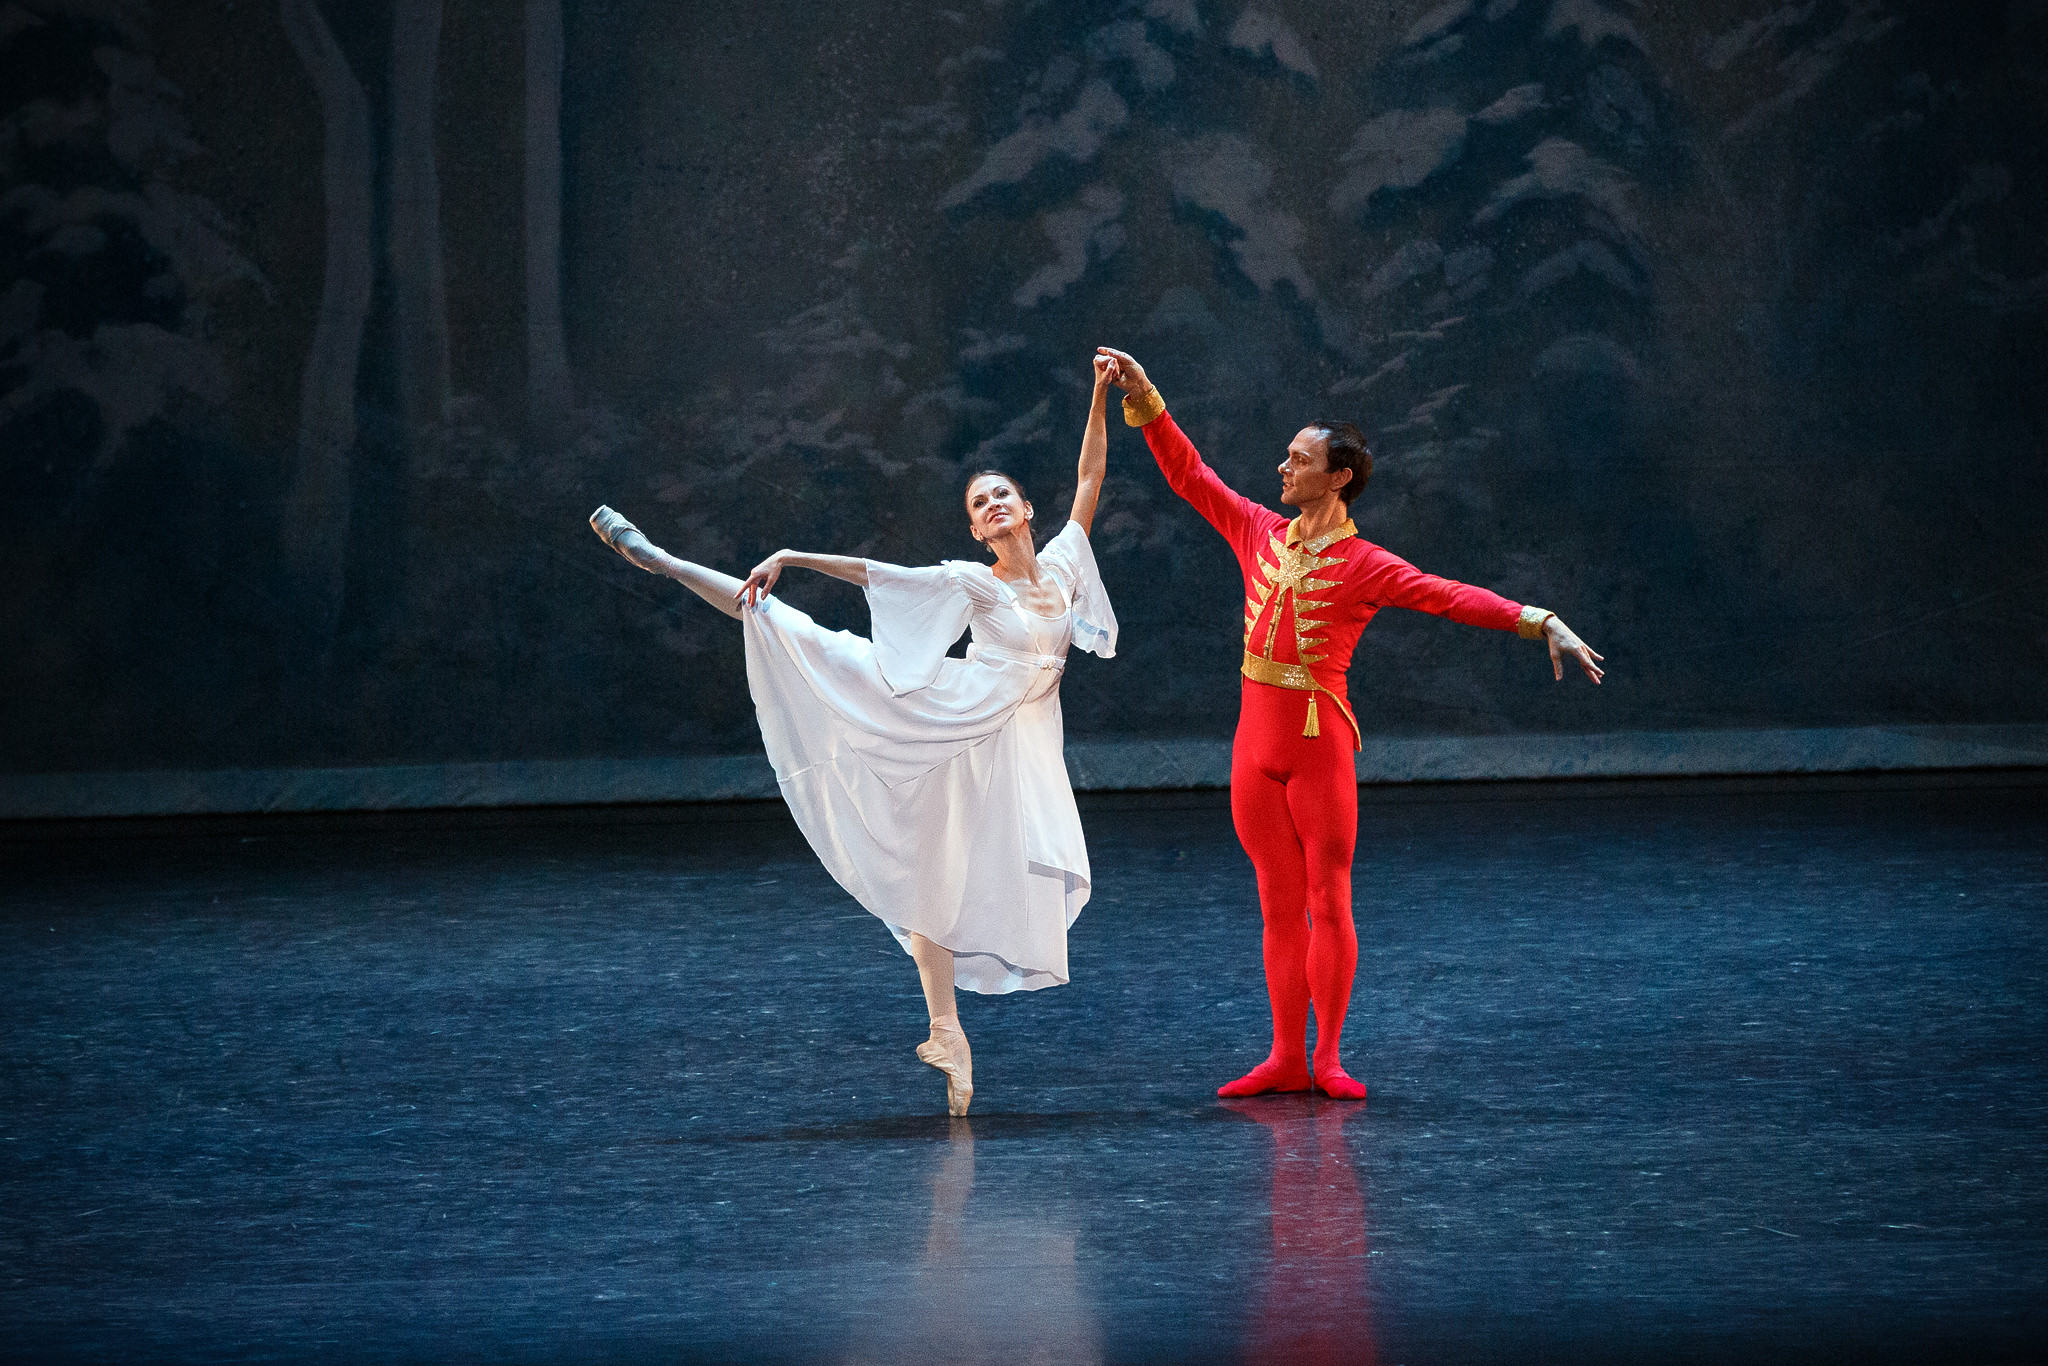 """an analysis of the nutcracker performance The nutcracker was the first formal ballet performance that i ever saw, and i have been attracted to the """"waltz in the flowers"""" piece composed by piotr tchaikovsky ever since i continued to listen to the piece through recorded music and it became my favorite piece of recorded music."""